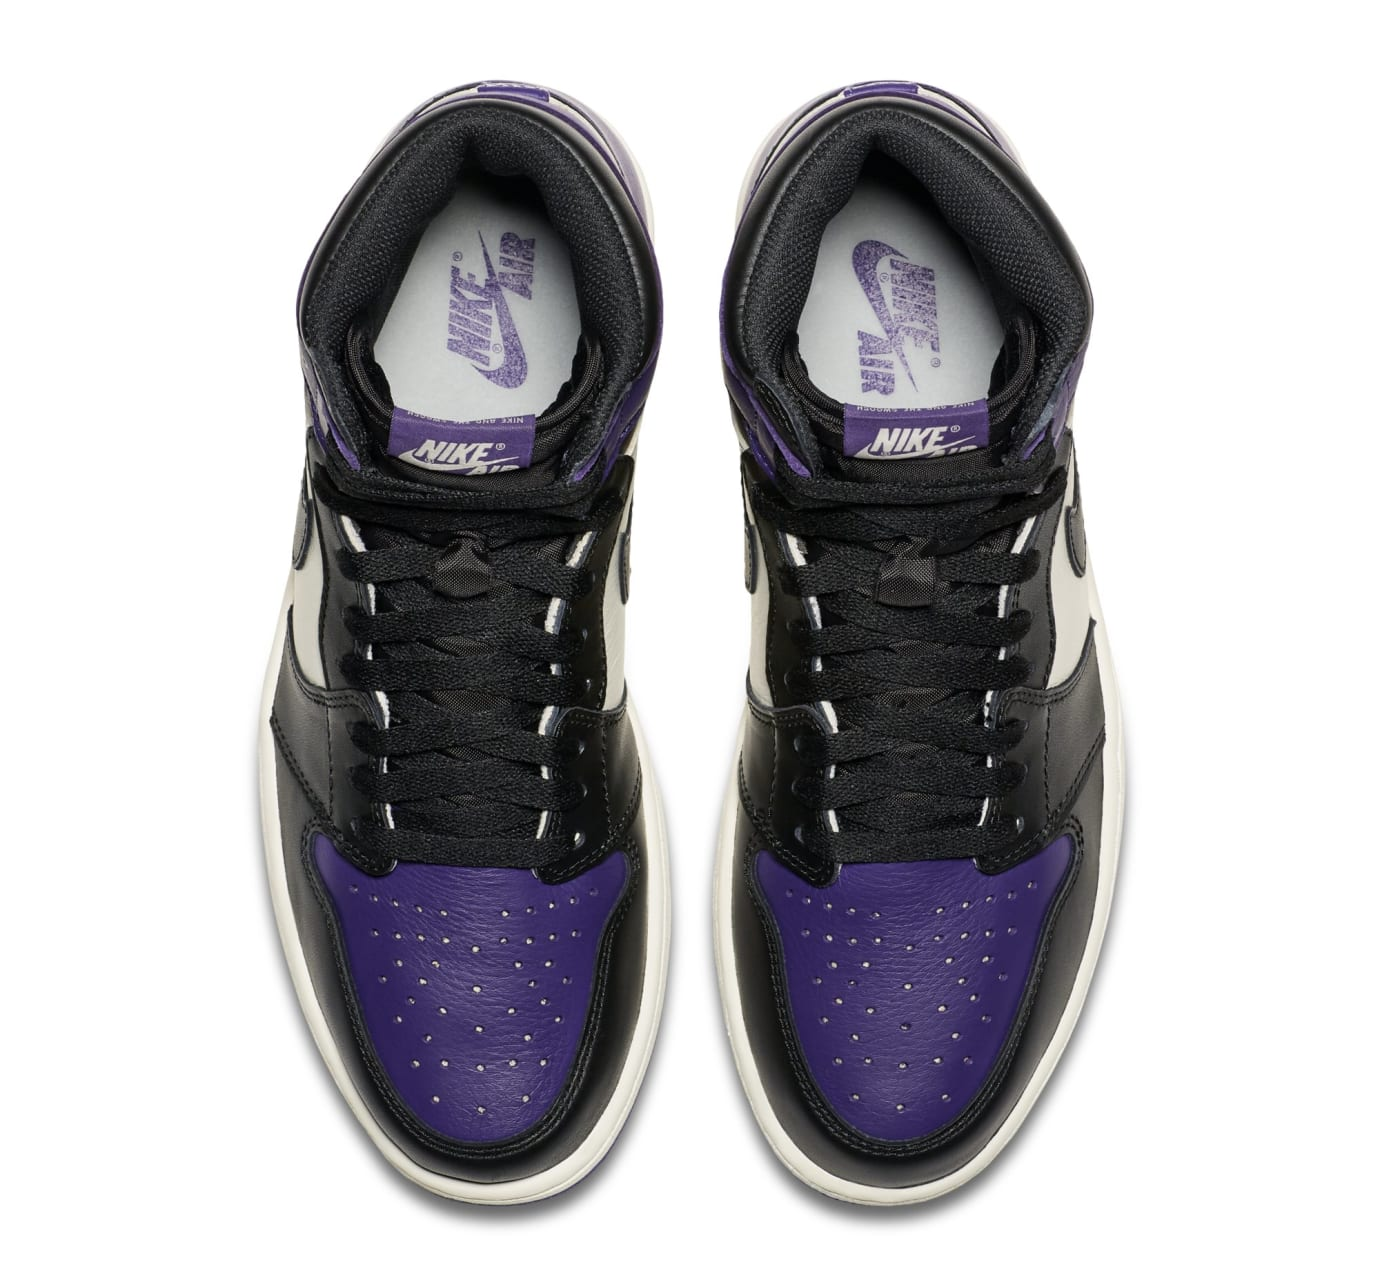 Image via Nike Air Jordan 1 High OG  Court Purple  555088-501 (Top) c484f10e7